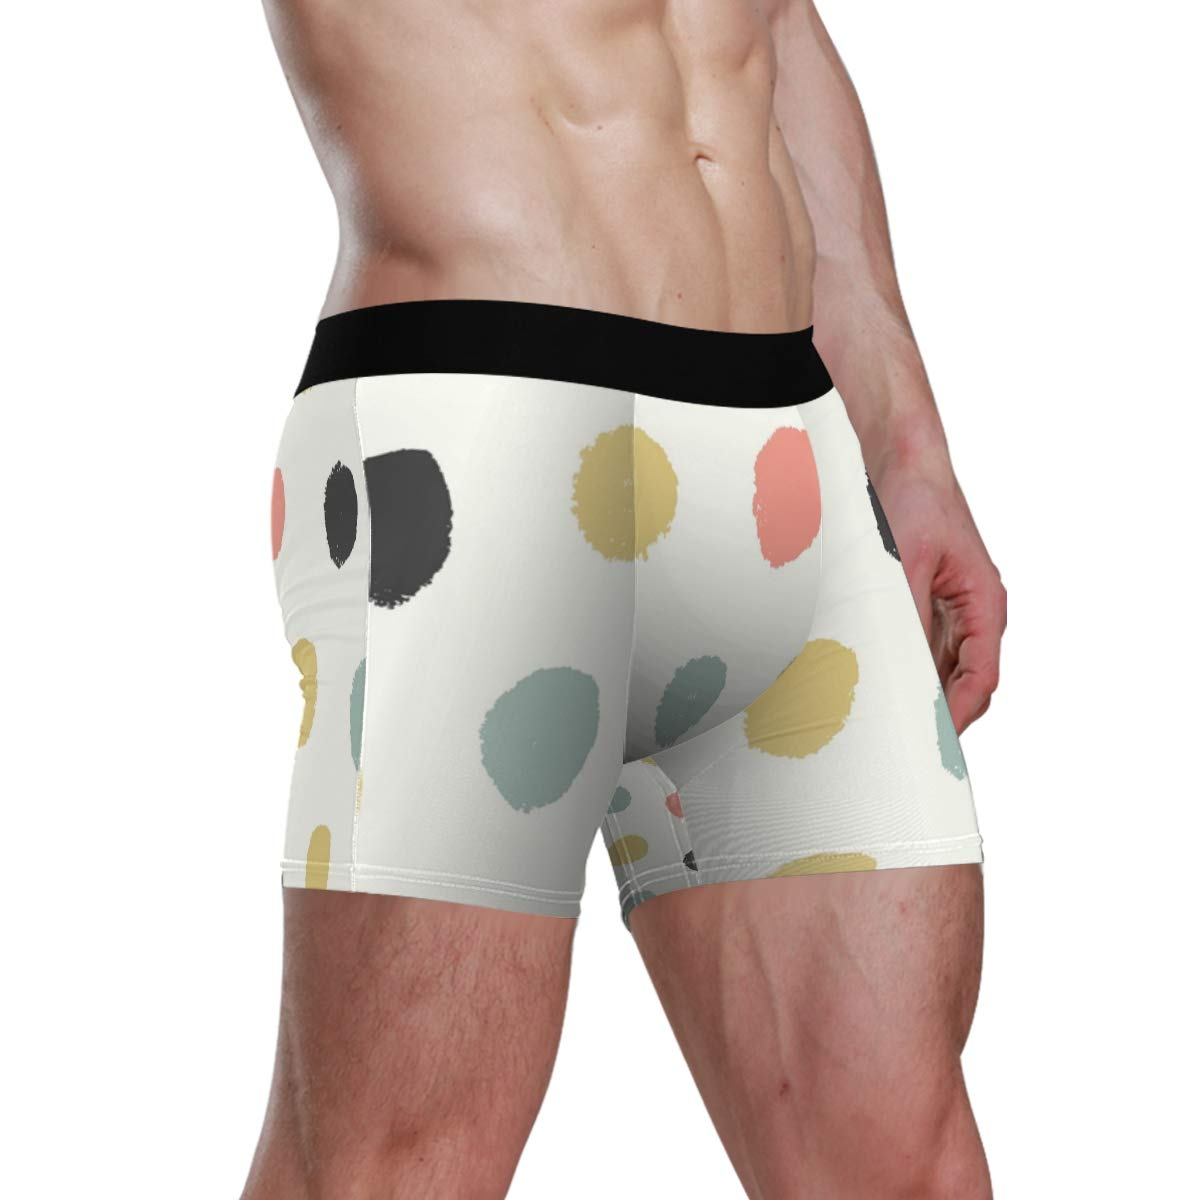 Watercolor Spots Vipsk Seamless Stretch Mens Polyester Boxer Briefs Underwear 1-Pack Set